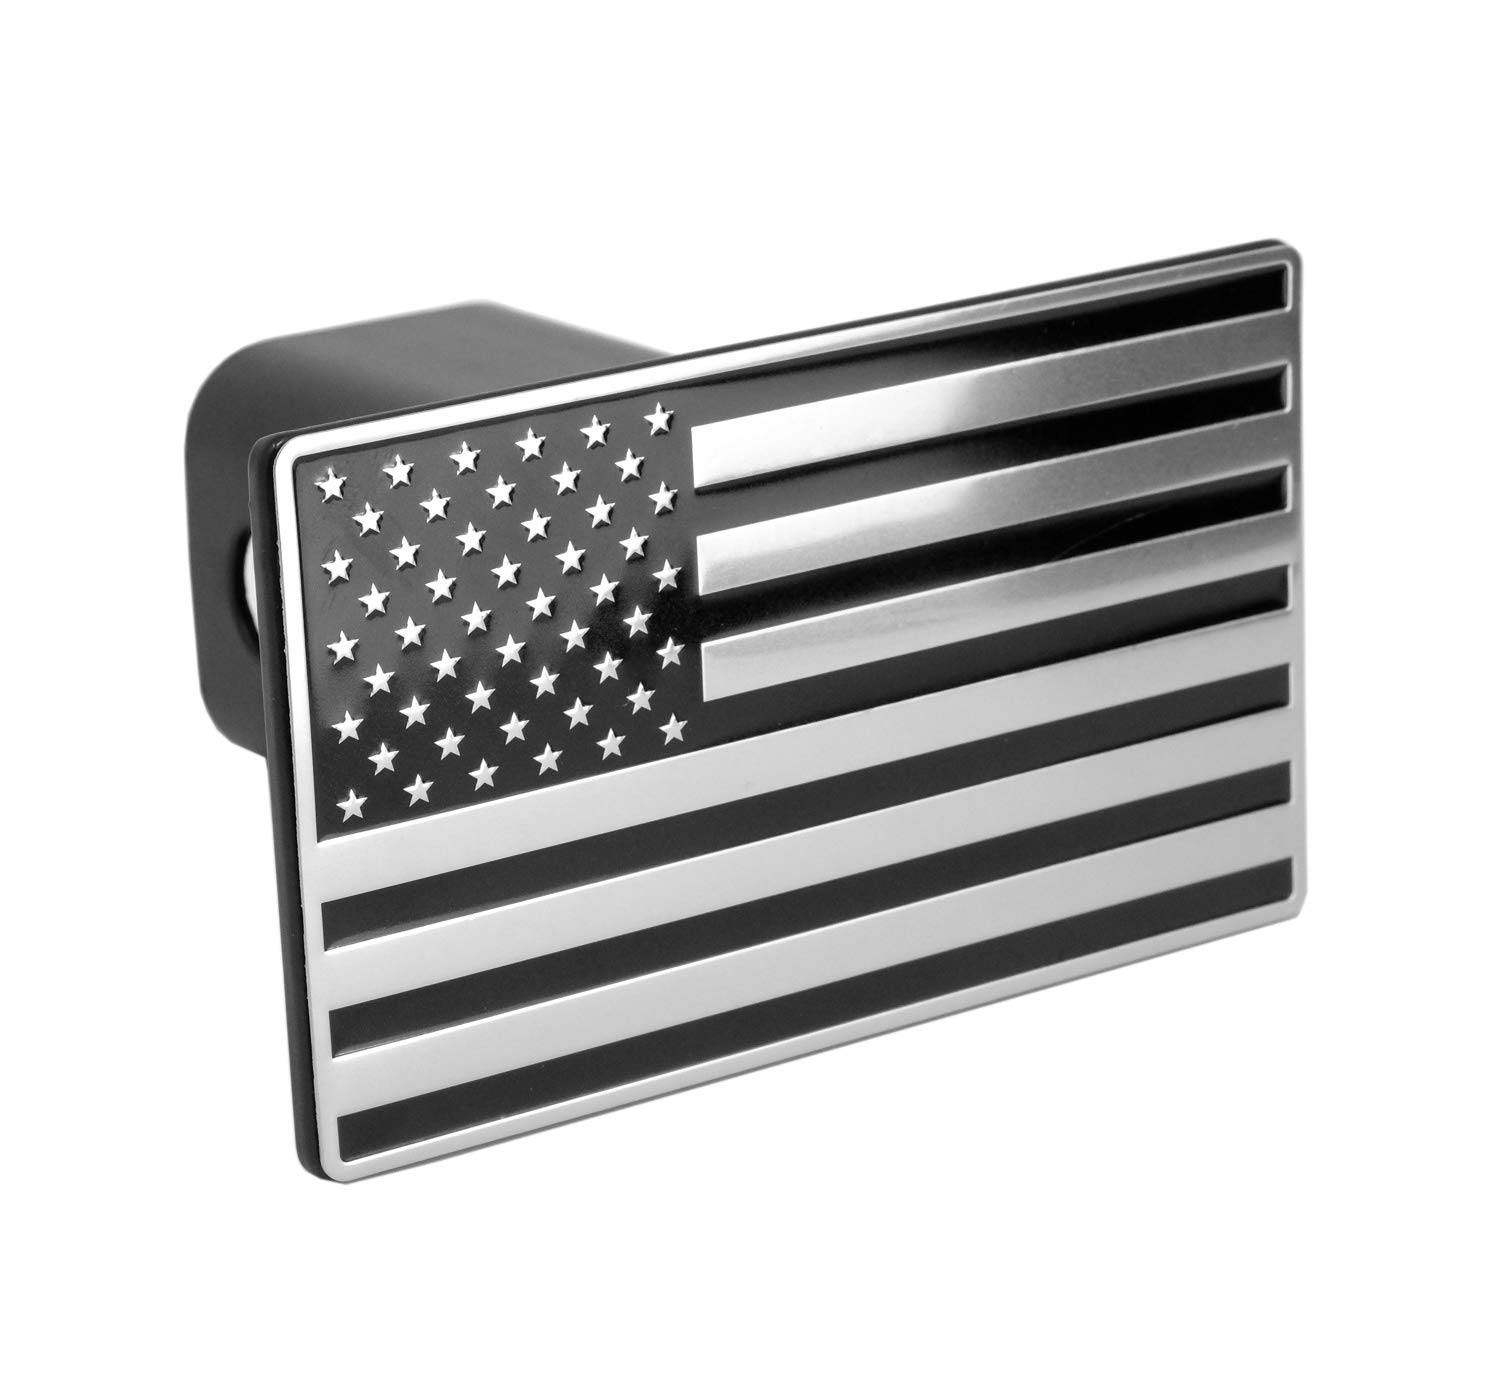 eVerHITCH US American Black & Chrome Flag Emblem Trailer Metal Hitch Cover Fits 2'' Receivers by eVerHITCH